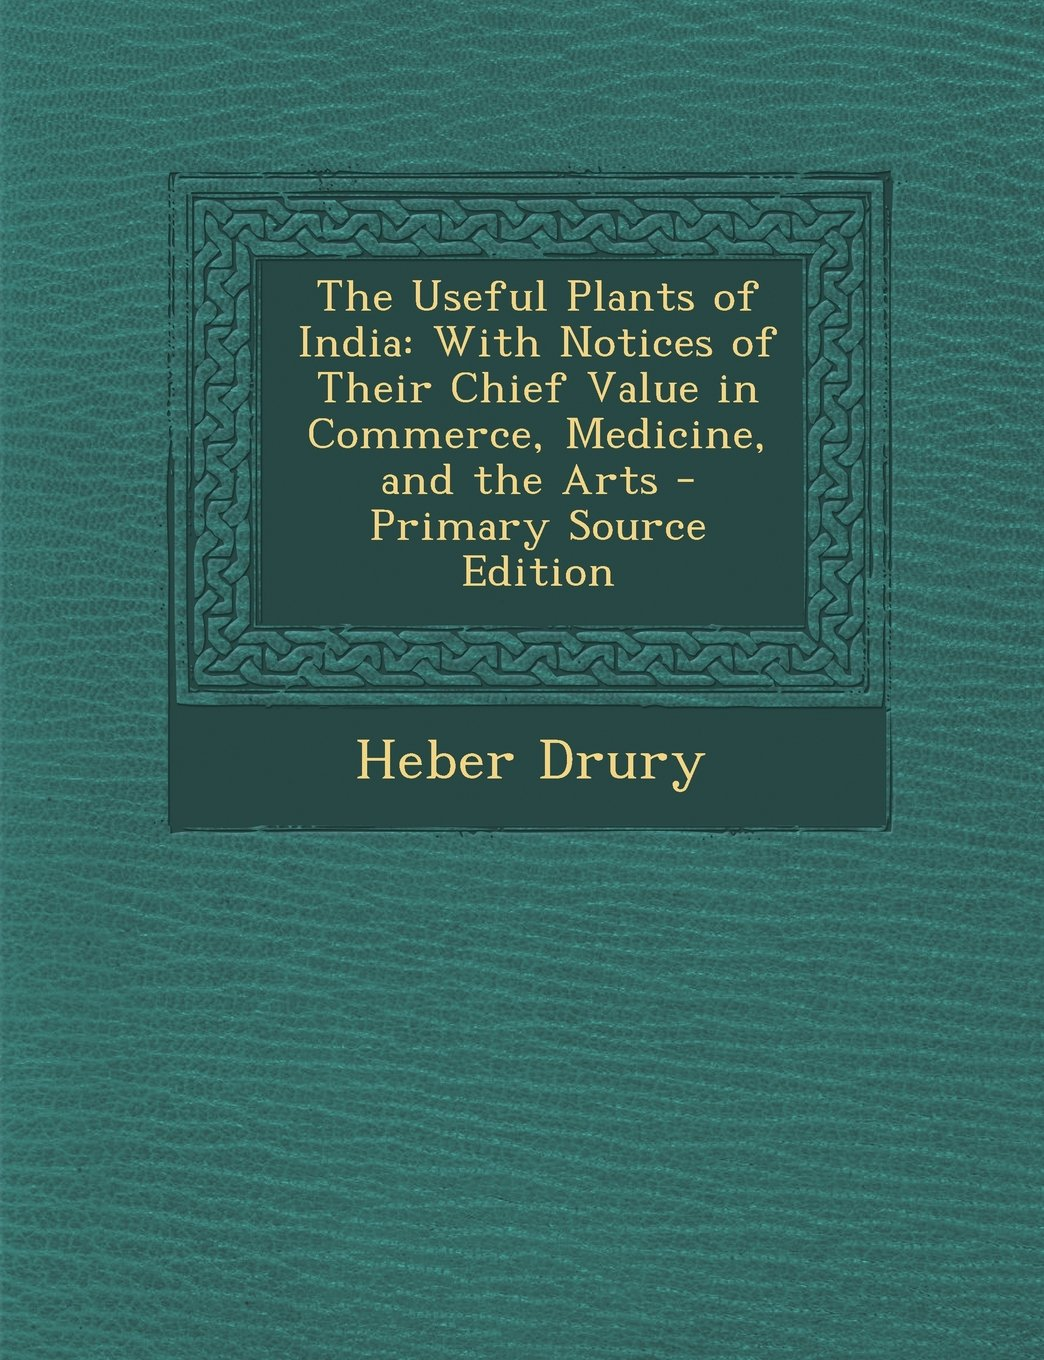 Read Online The Useful Plants of India: With Notices of Their Chief Value in Commerce, Medicine, and the Arts pdf epub